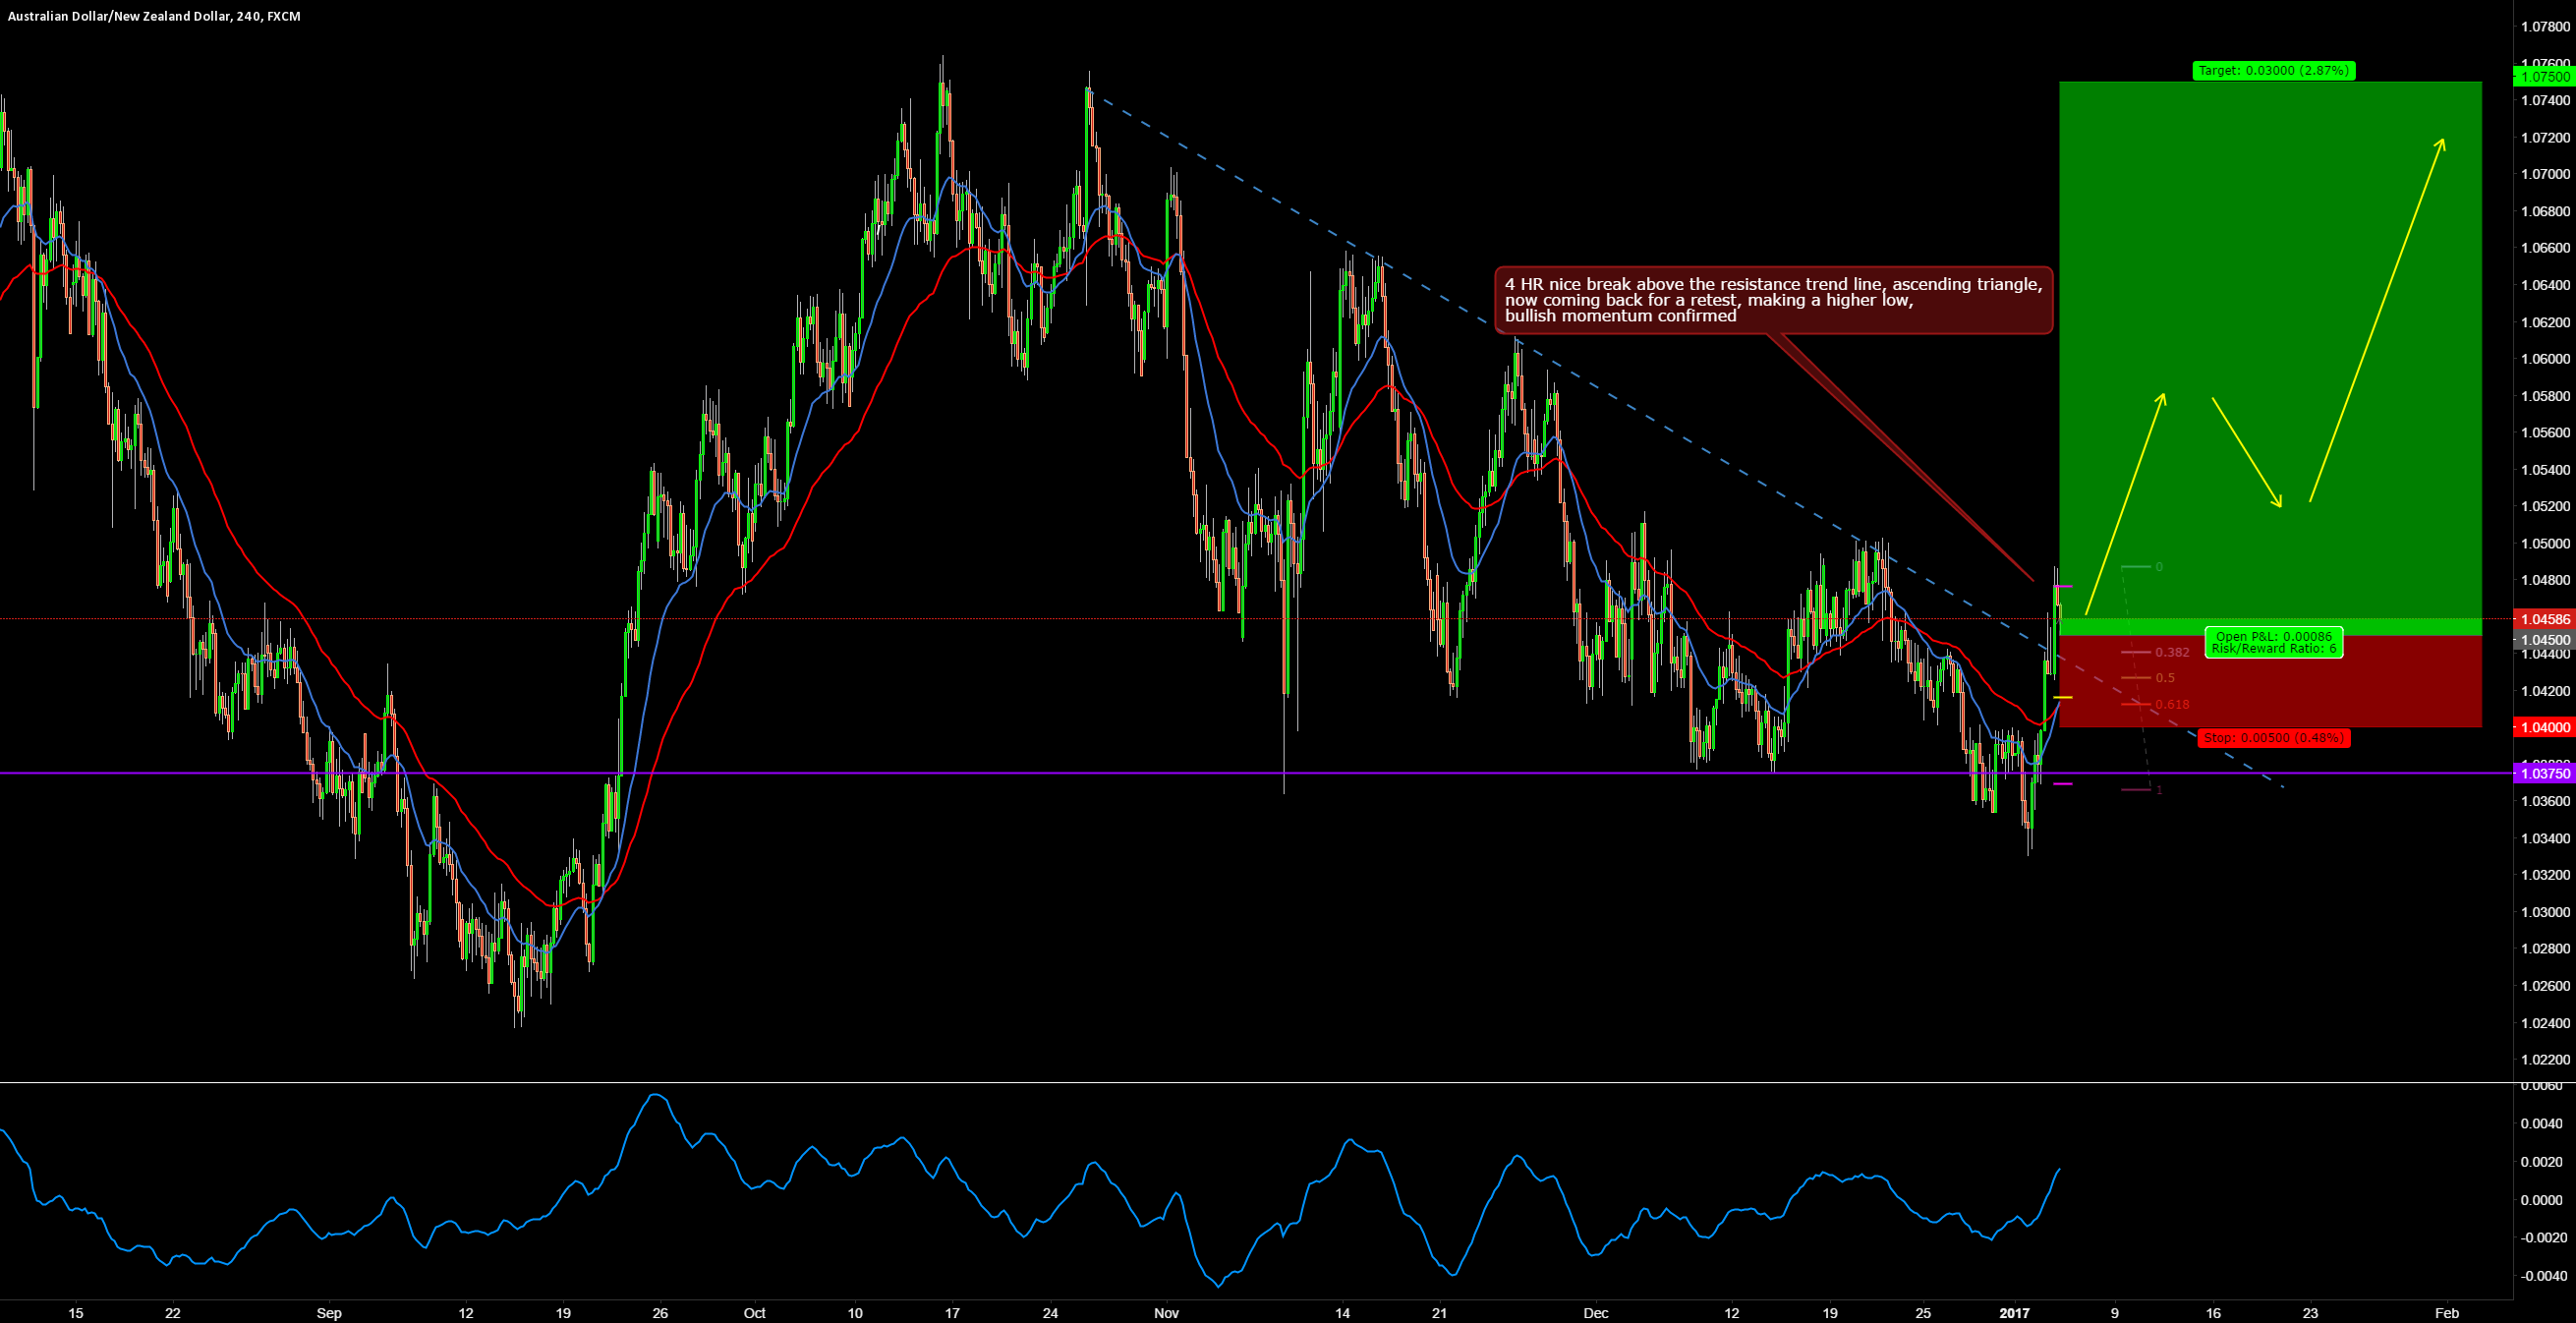 AUDNZD LONG 4 HR BREAK AND RETEST TRADE SETUP